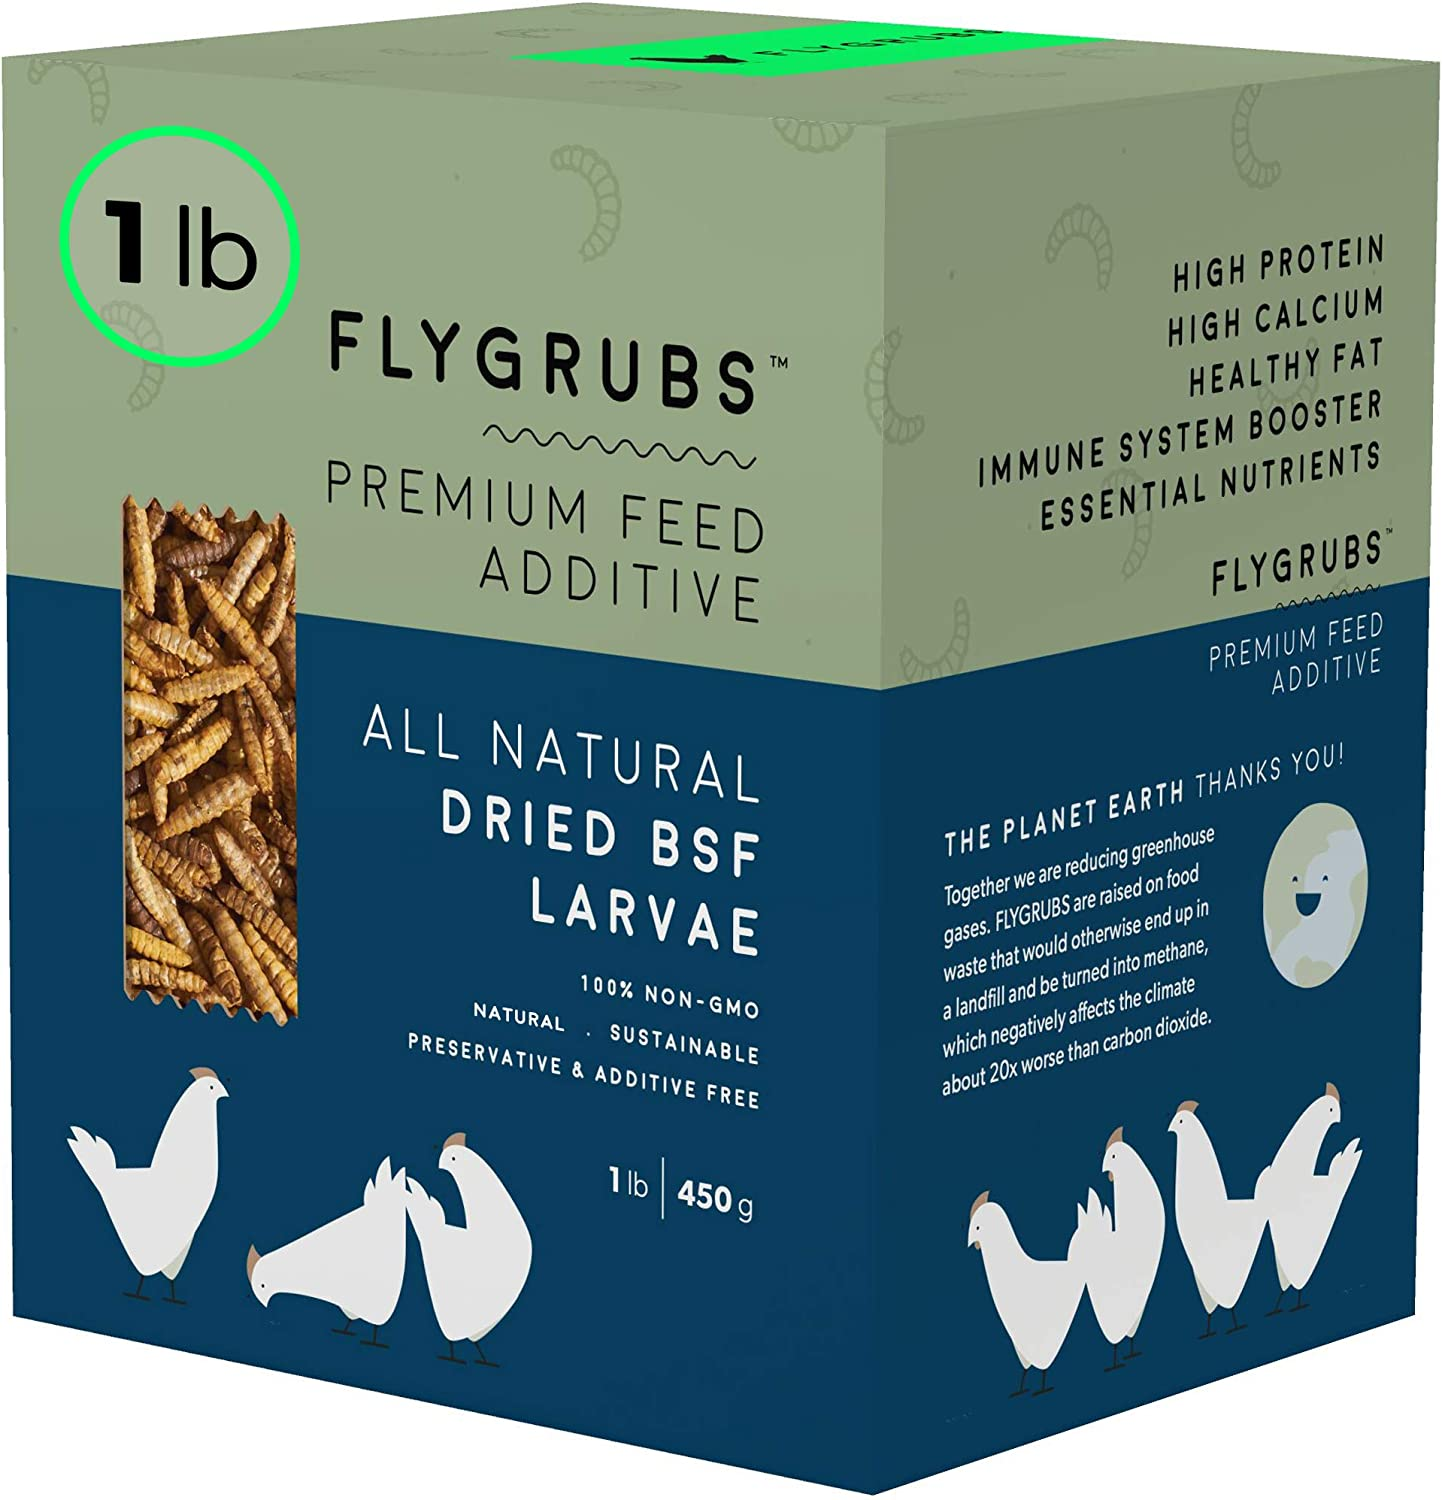 FLYGRUBS Superior to Dried Mealworms for Chickens (1 lb) - 85X More Calcium Than Meal Worms - Non-GMO Chicken Feed Additive & Molting Supplement - BSFL Treats for Hens, Ducks, Wild Birds